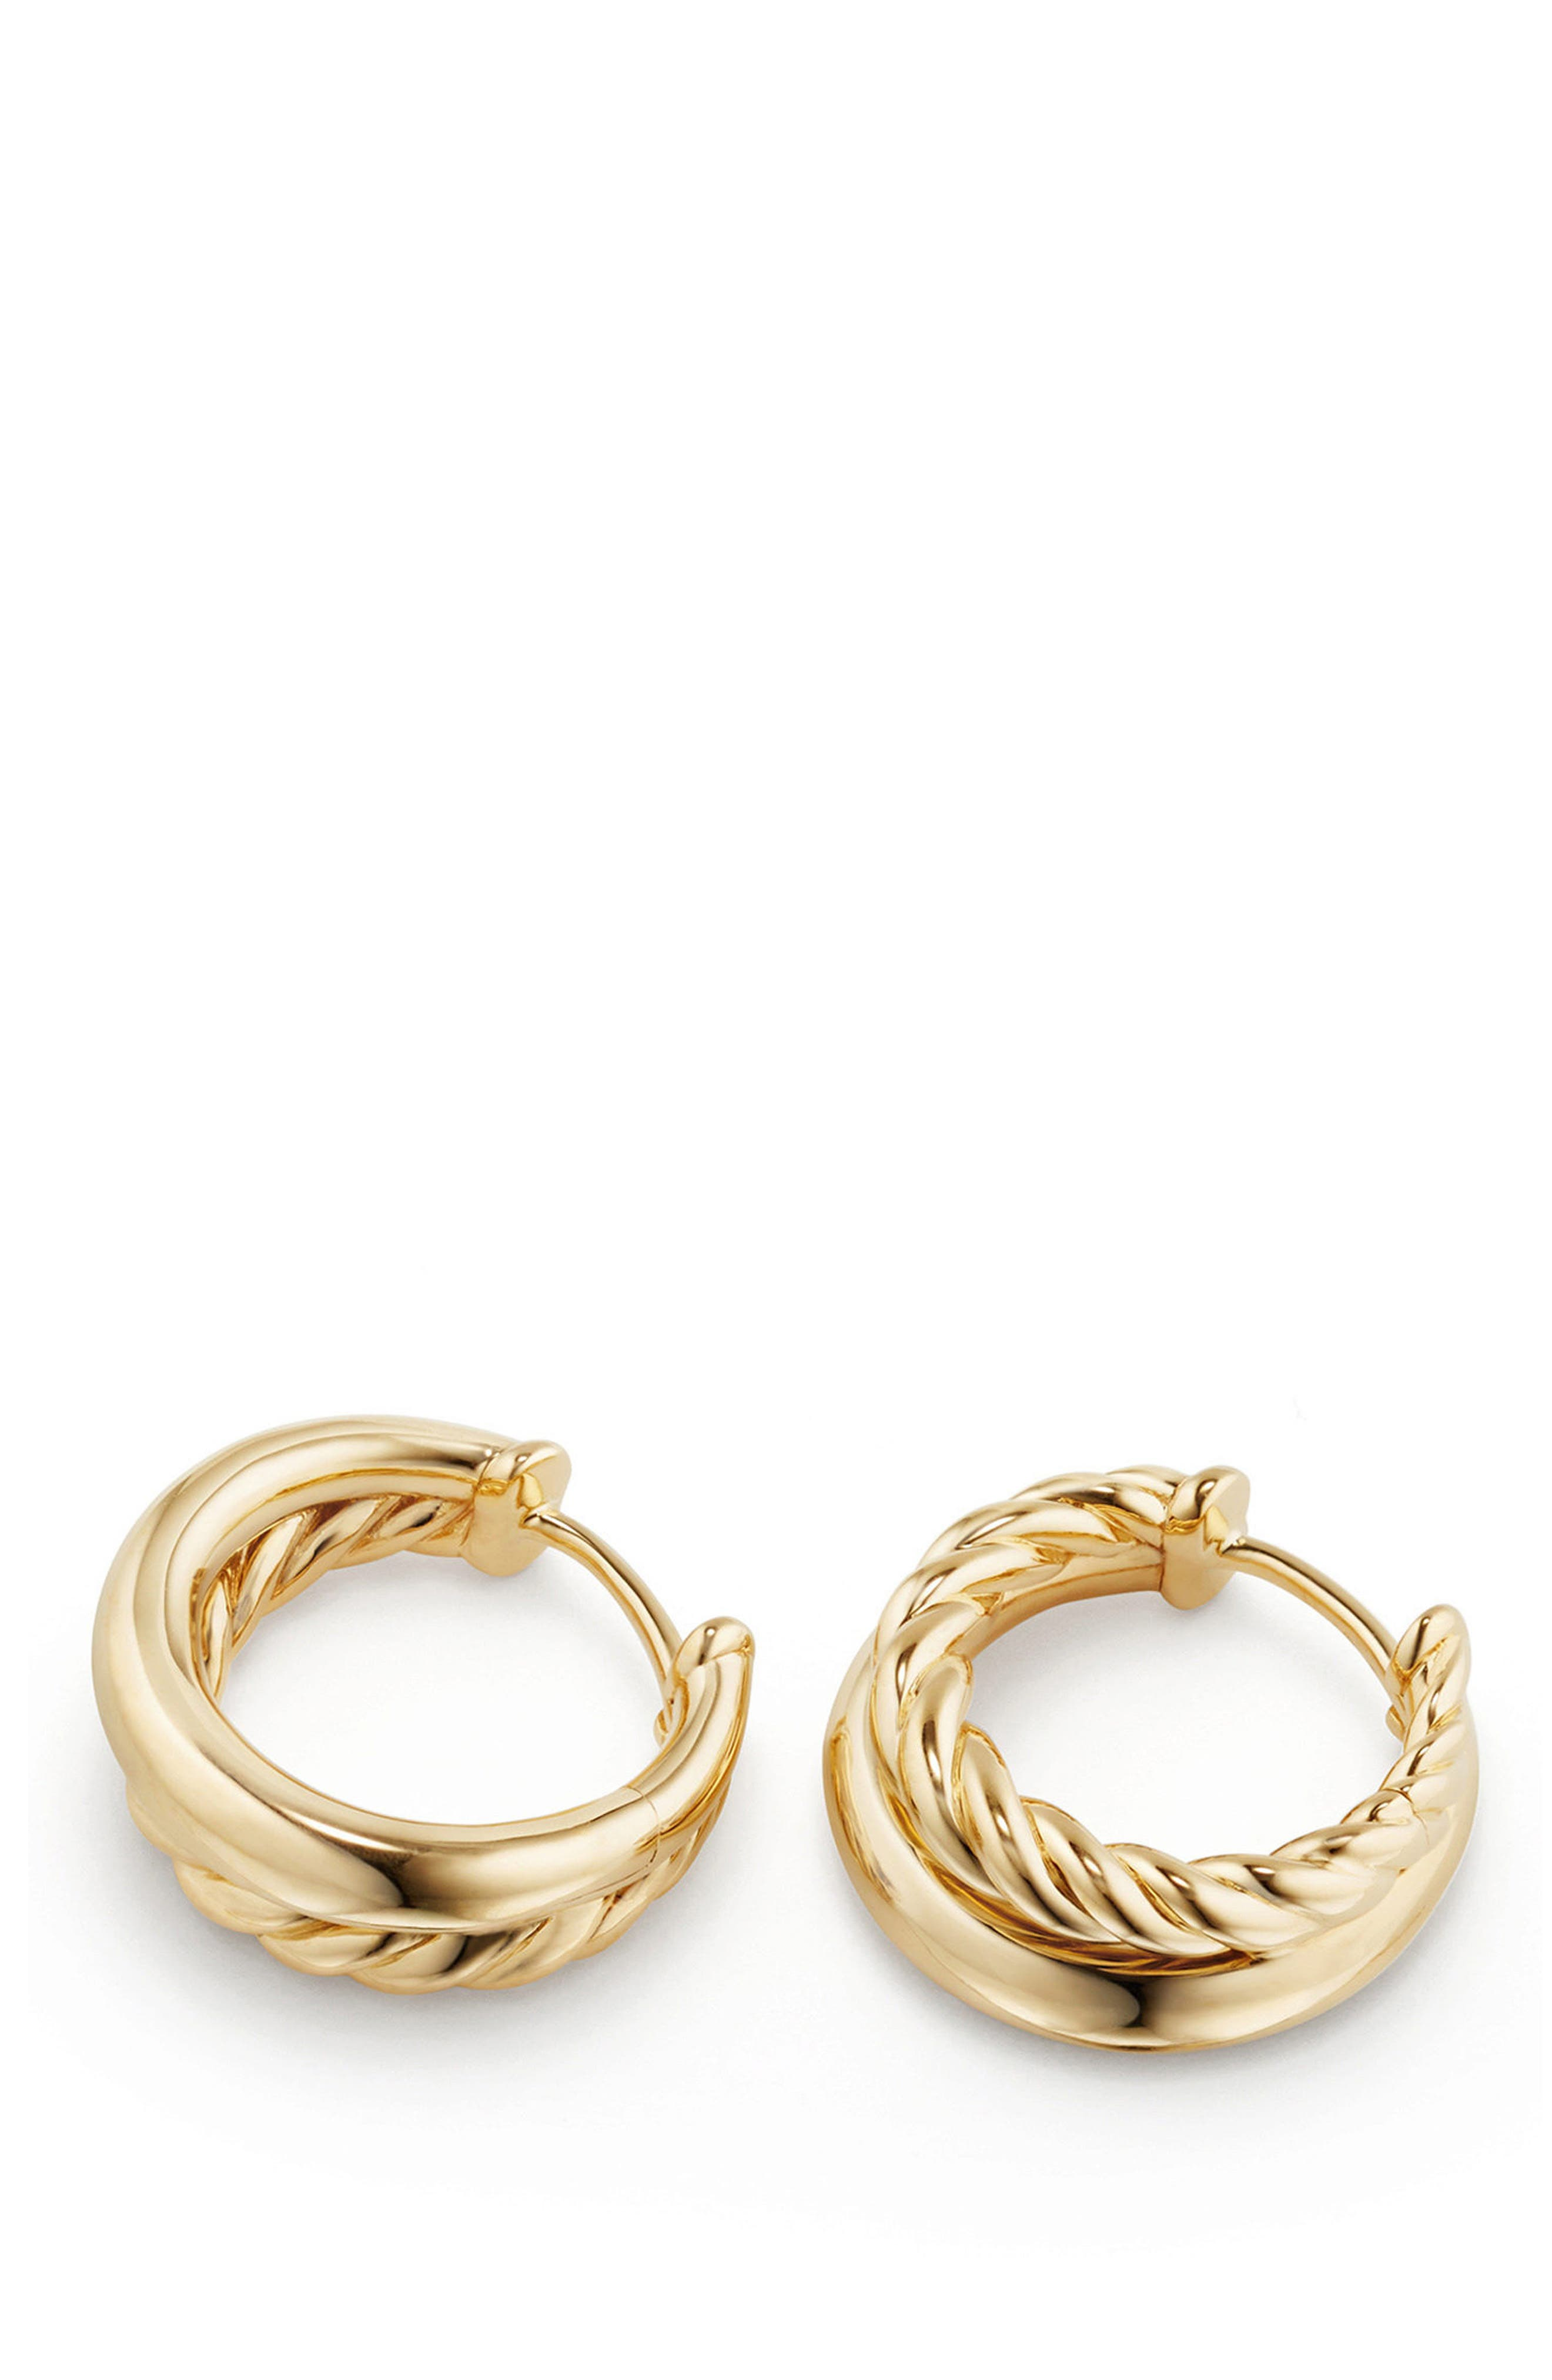 Pure Form Hoop Earrings in 18K Gold, 12mm,                             Alternate thumbnail 2, color,                             Yellow Gold